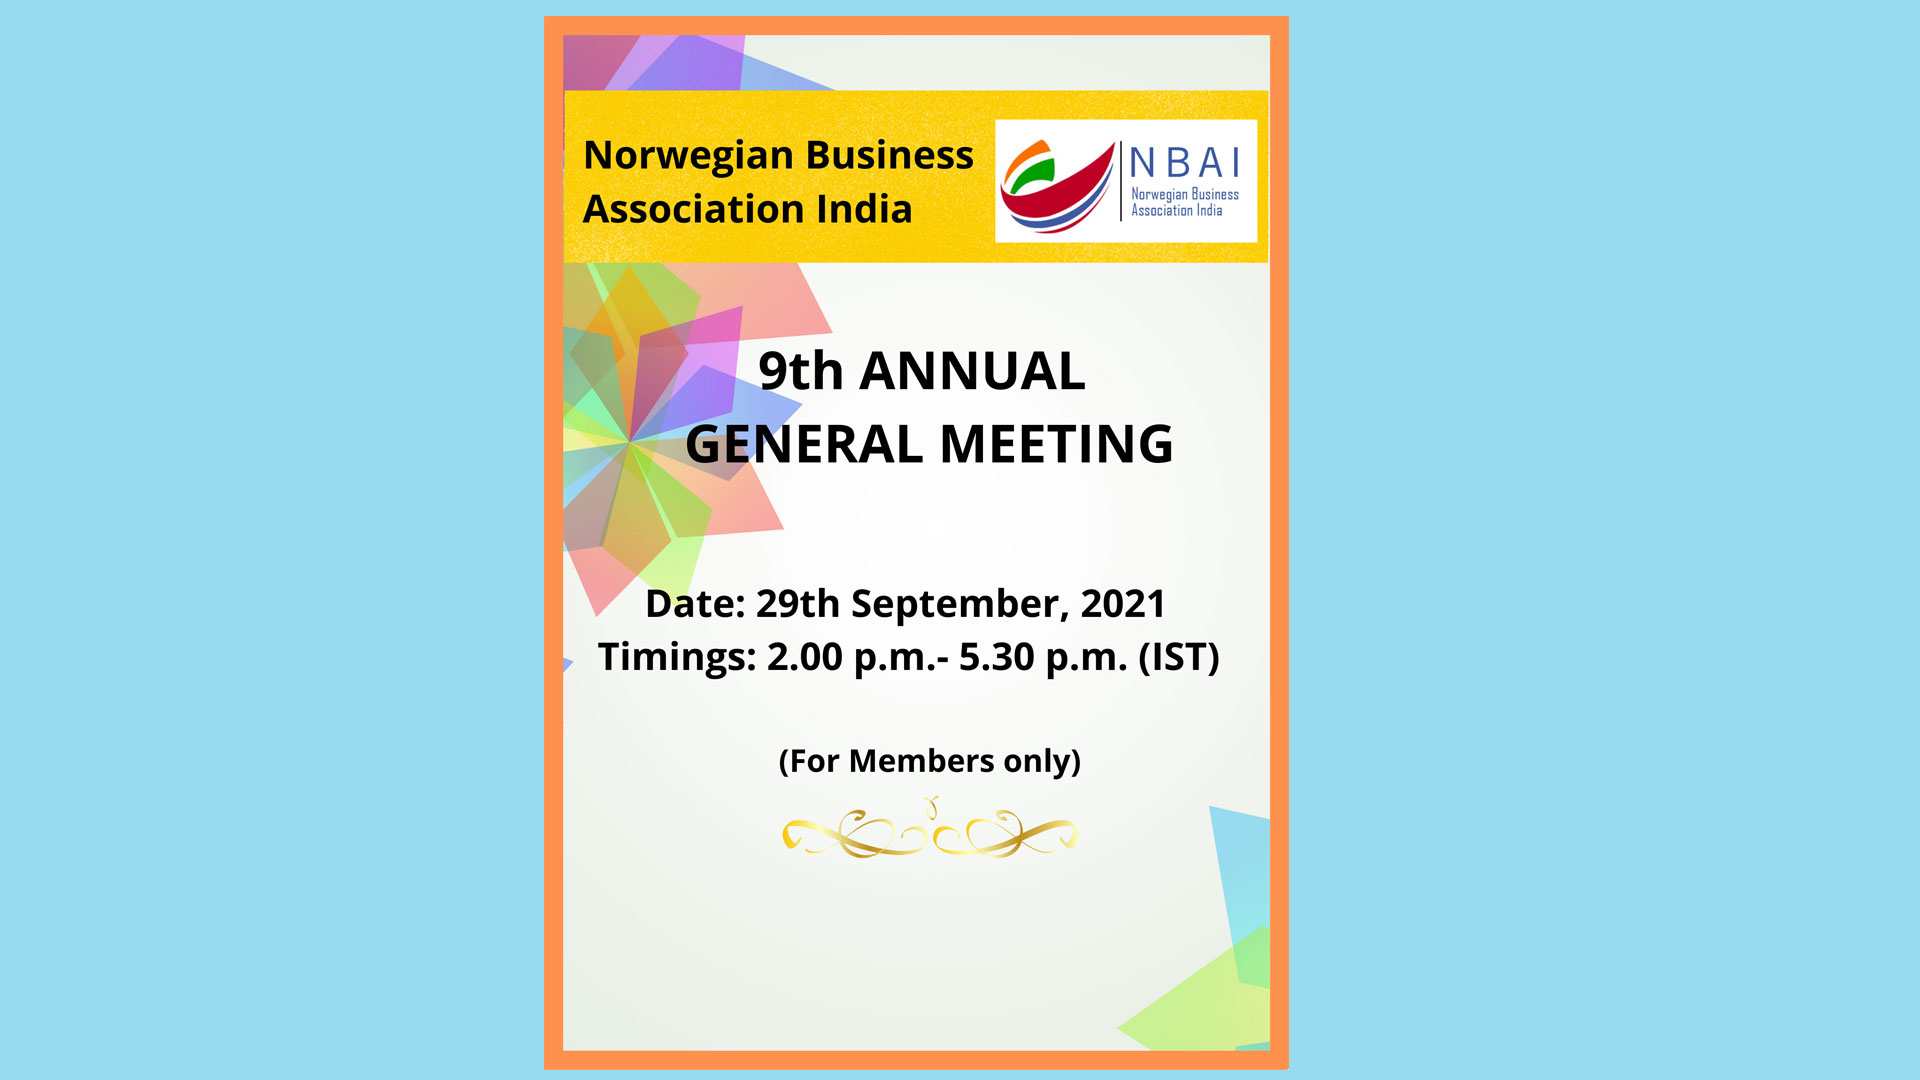 NBAI's 9th ANNUAL GENERAL BODY MEETING IS SCHEDULED ON THE 29th SEPT, 2021